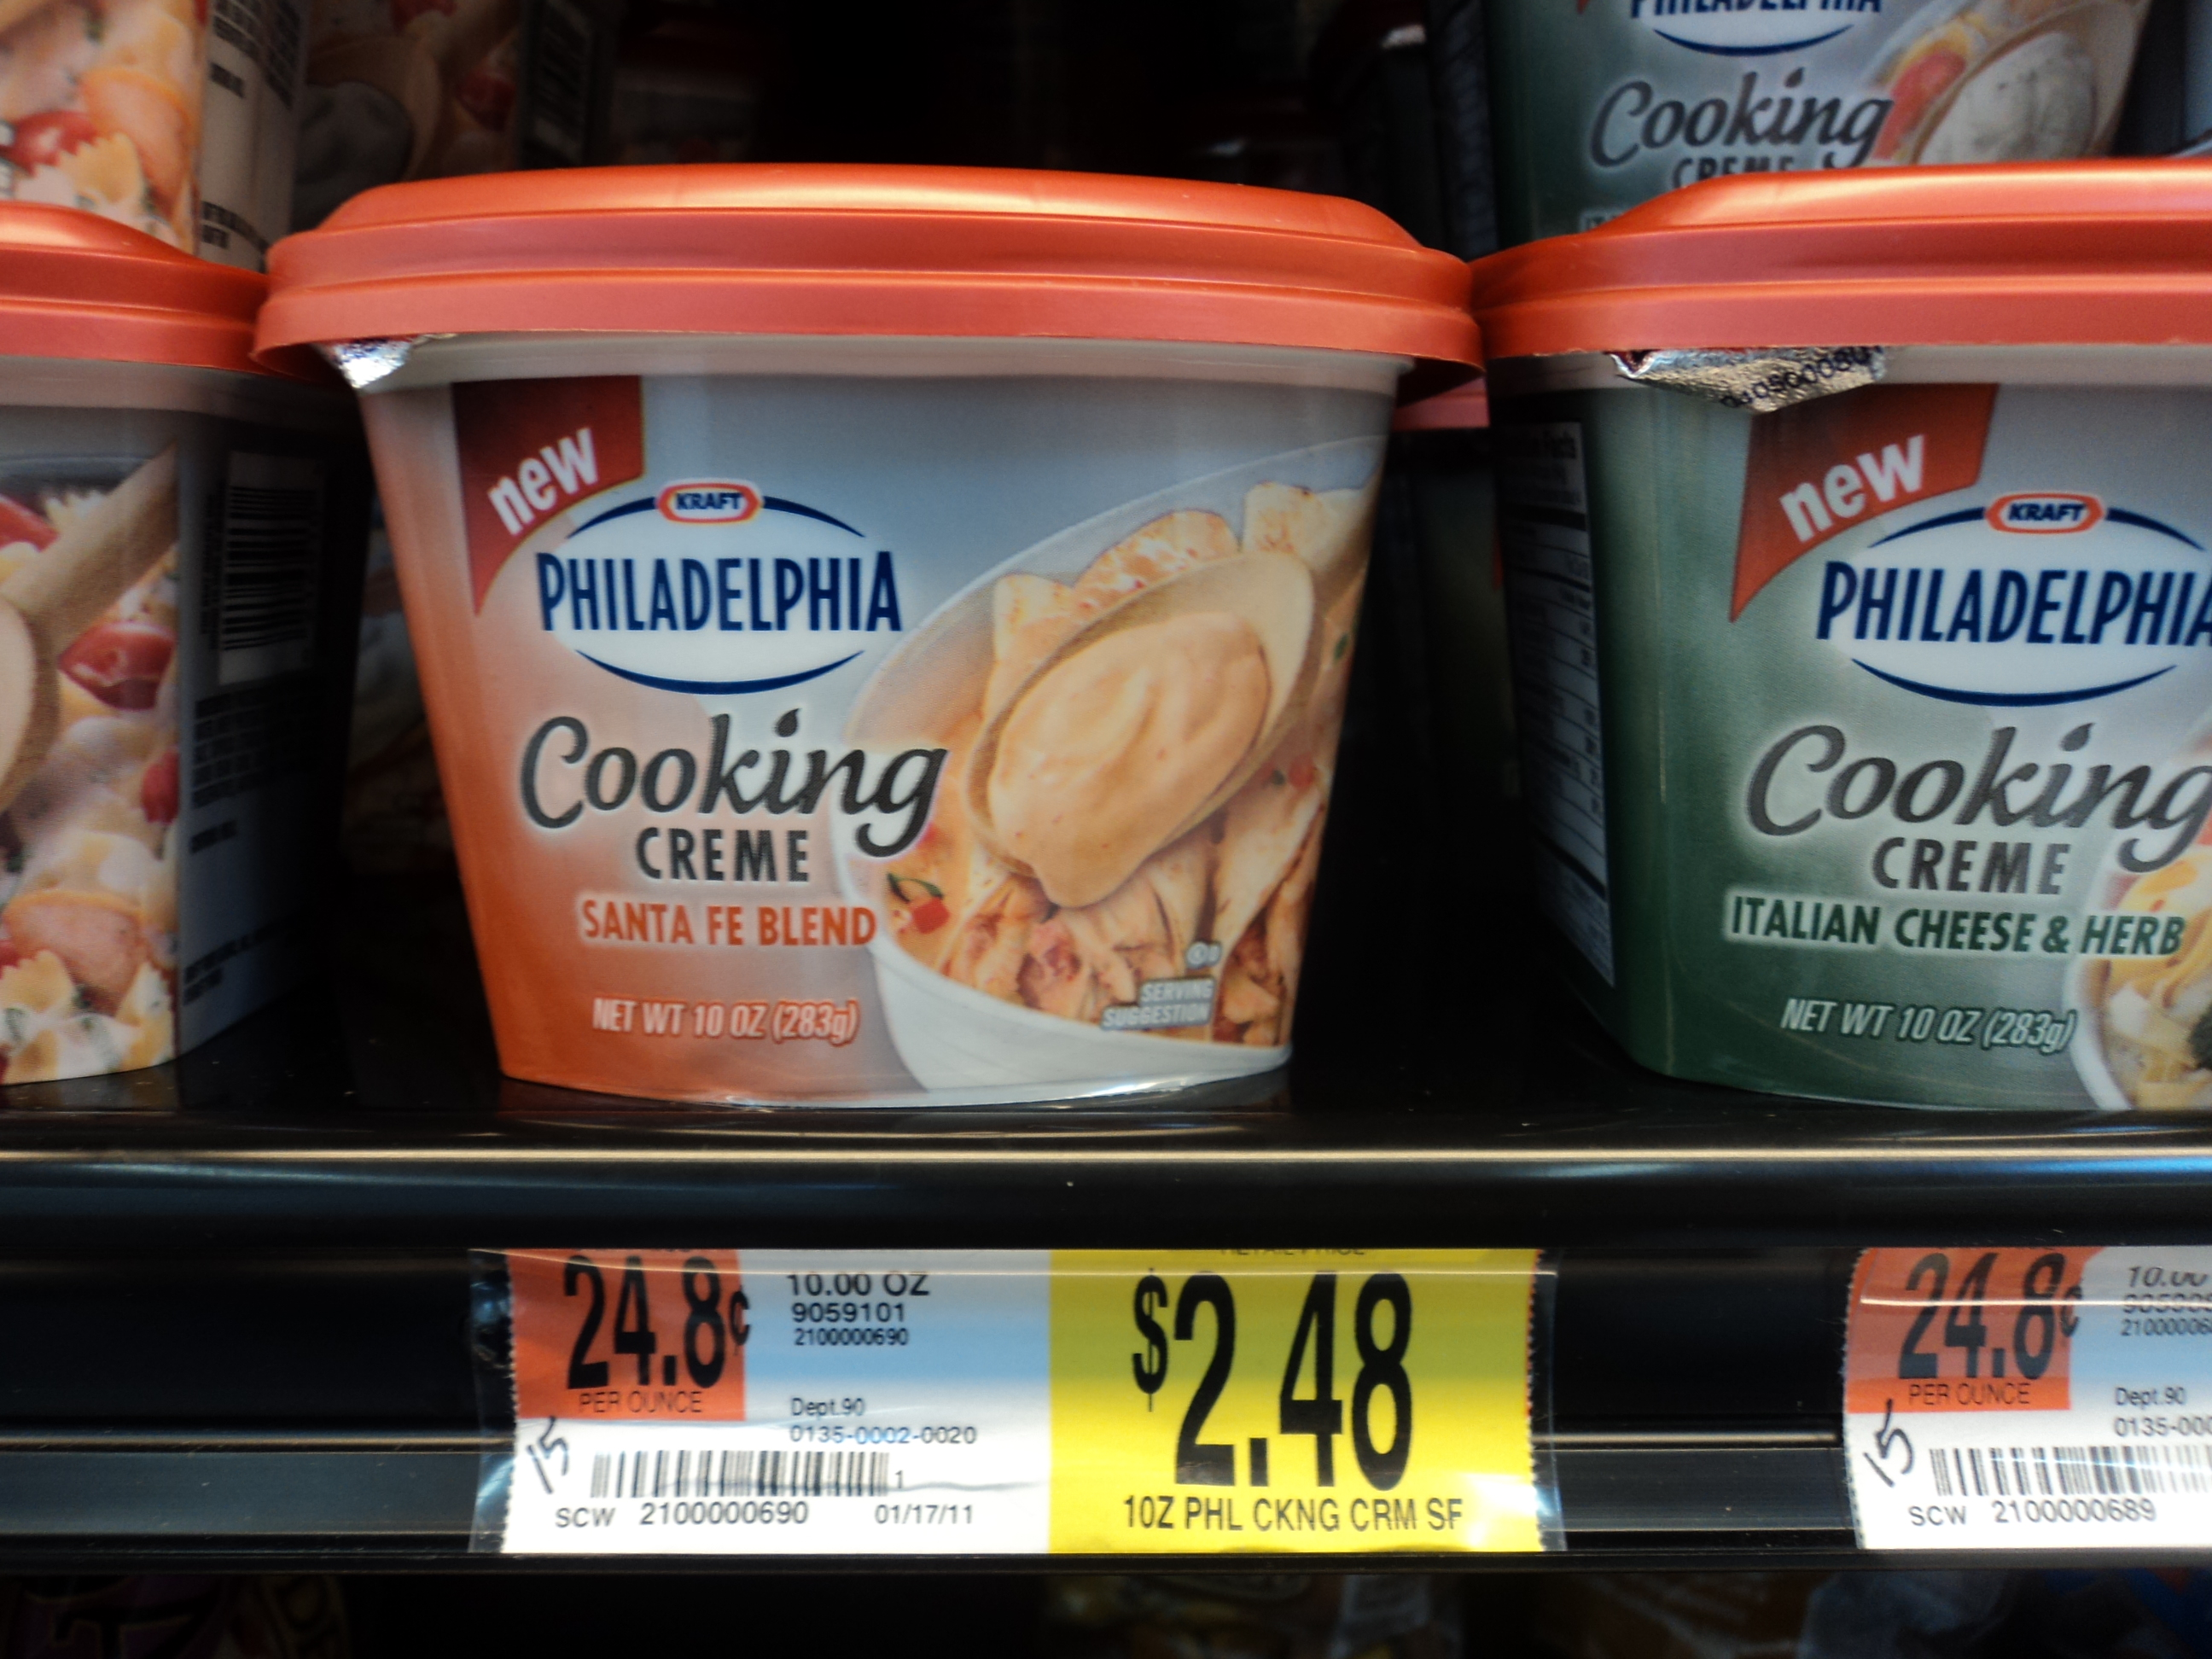 walmart-philadelphia-cooking-creme